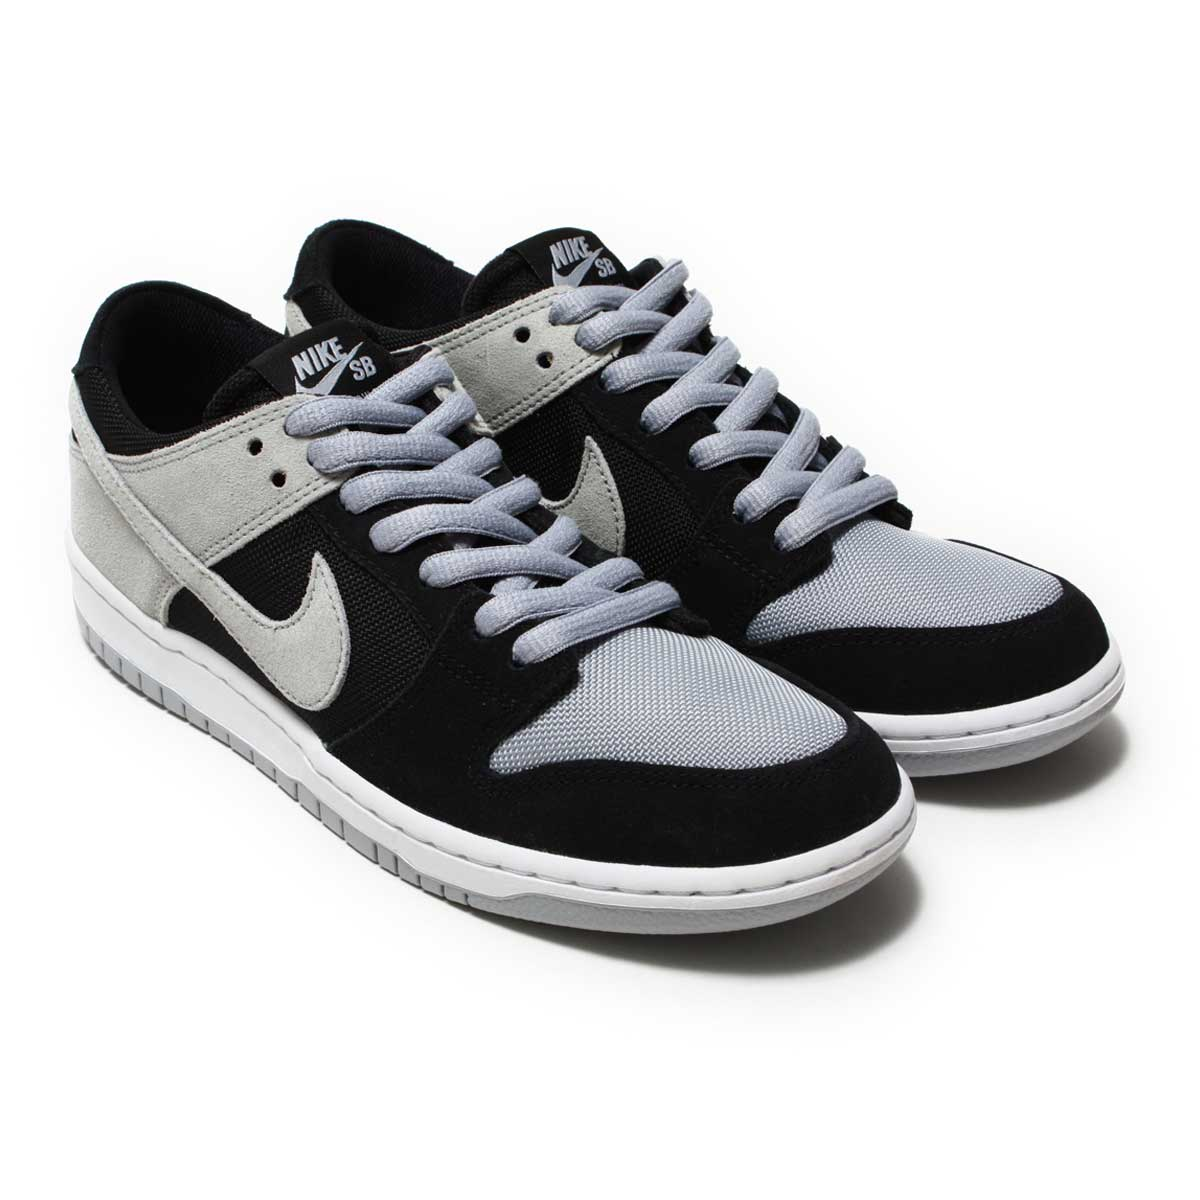 info for a92db e3b15 ... black shoes unless authentic i change a design for nike sb pro wear. i  direct the dunk style ...